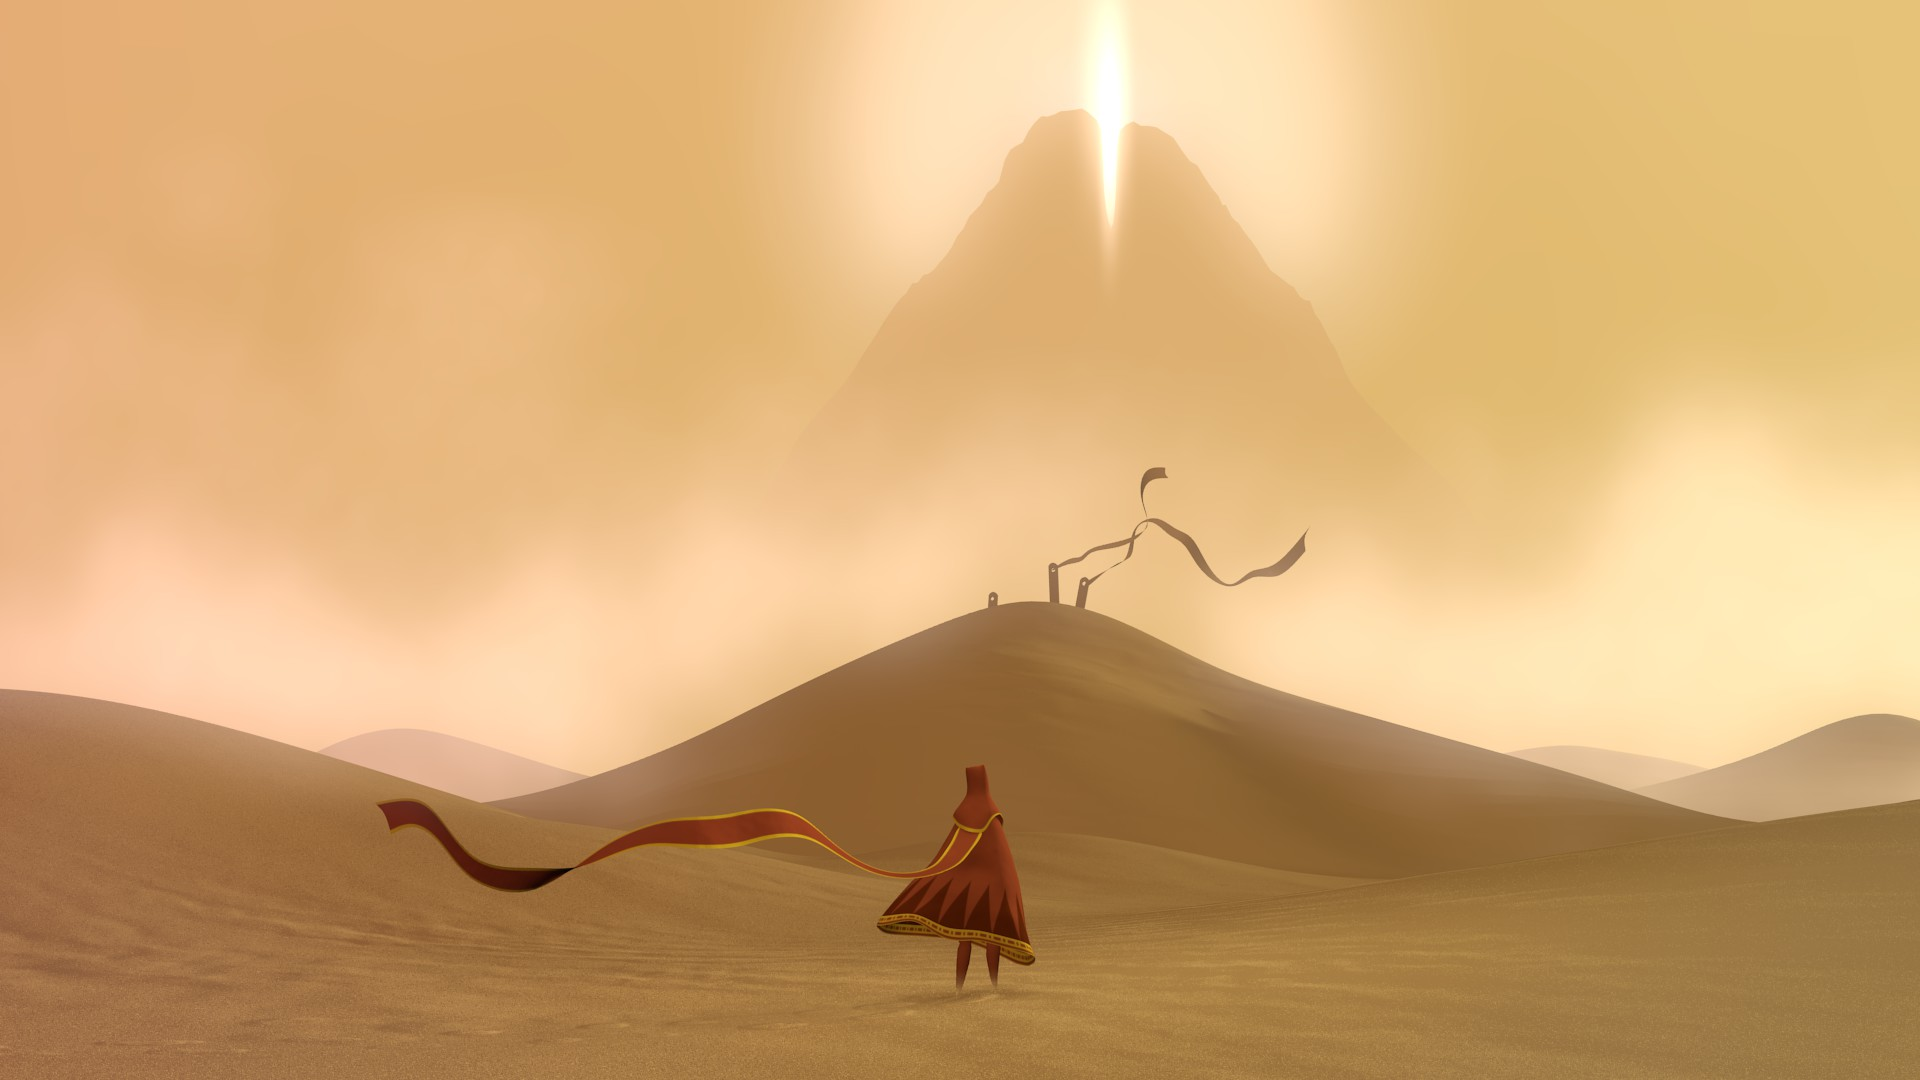 Journey Game Wallpaper 14424 1920x1080px 1920x1080